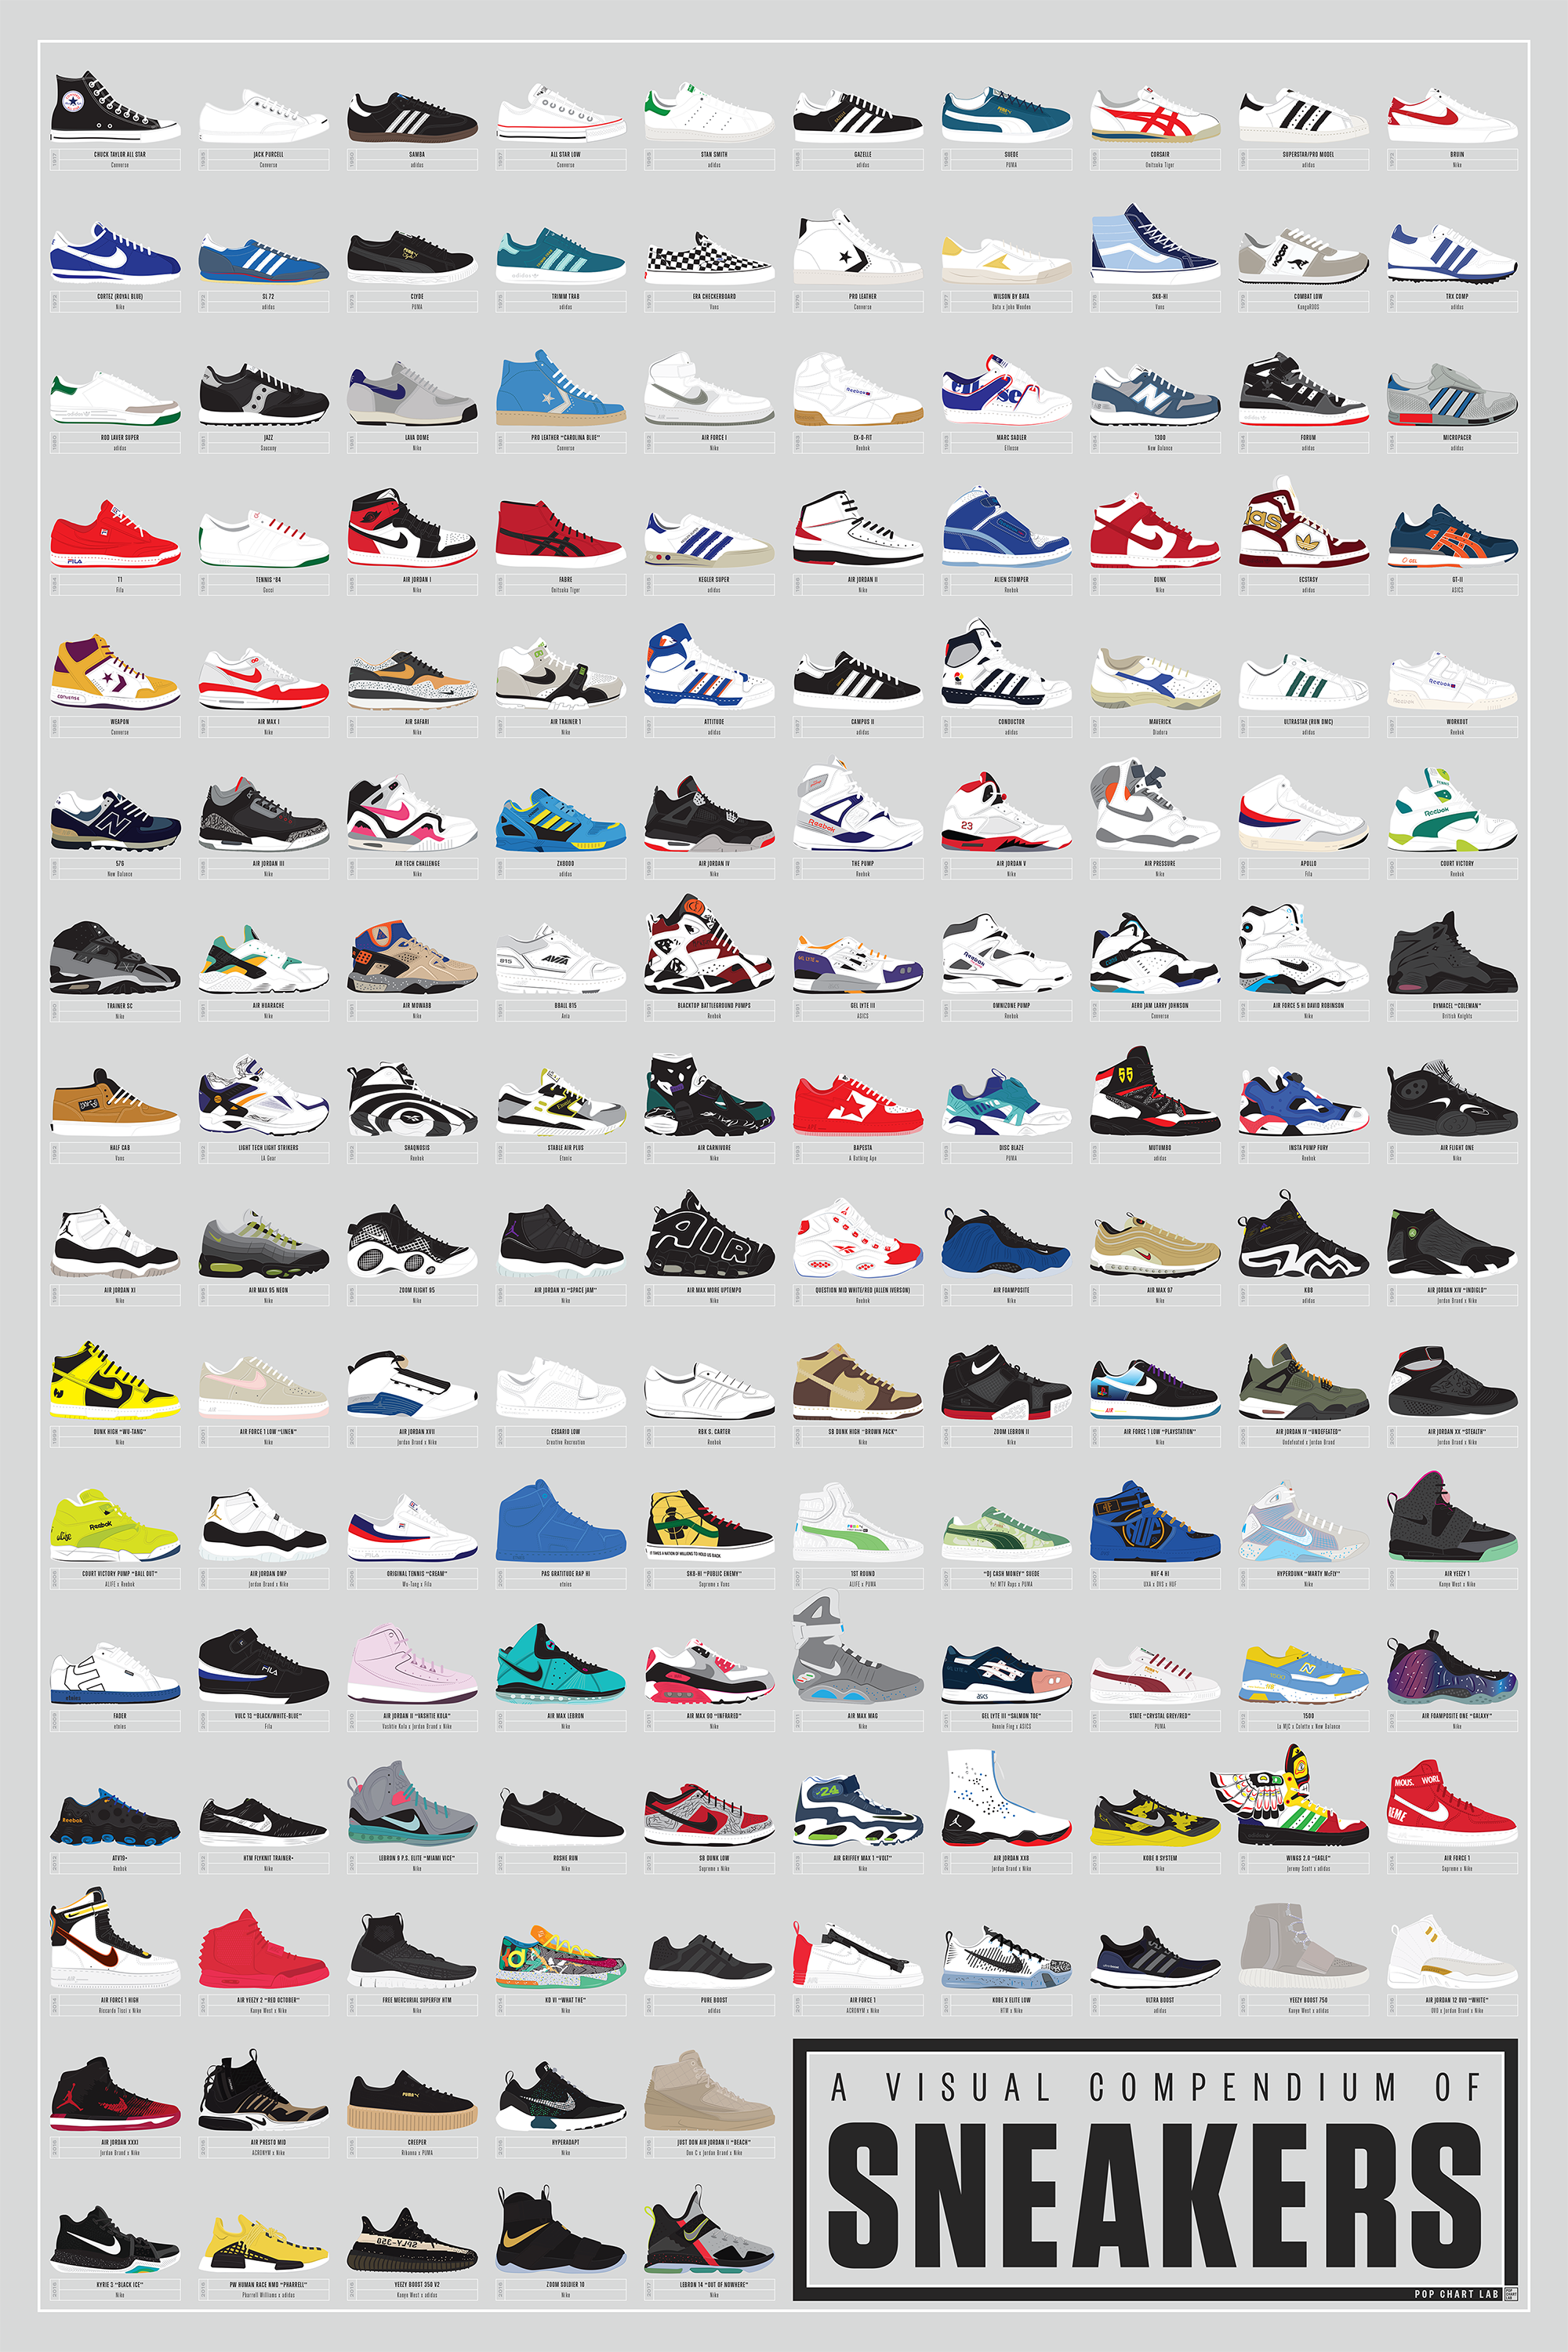 A Visual Compendium of Sneakers #sneakers